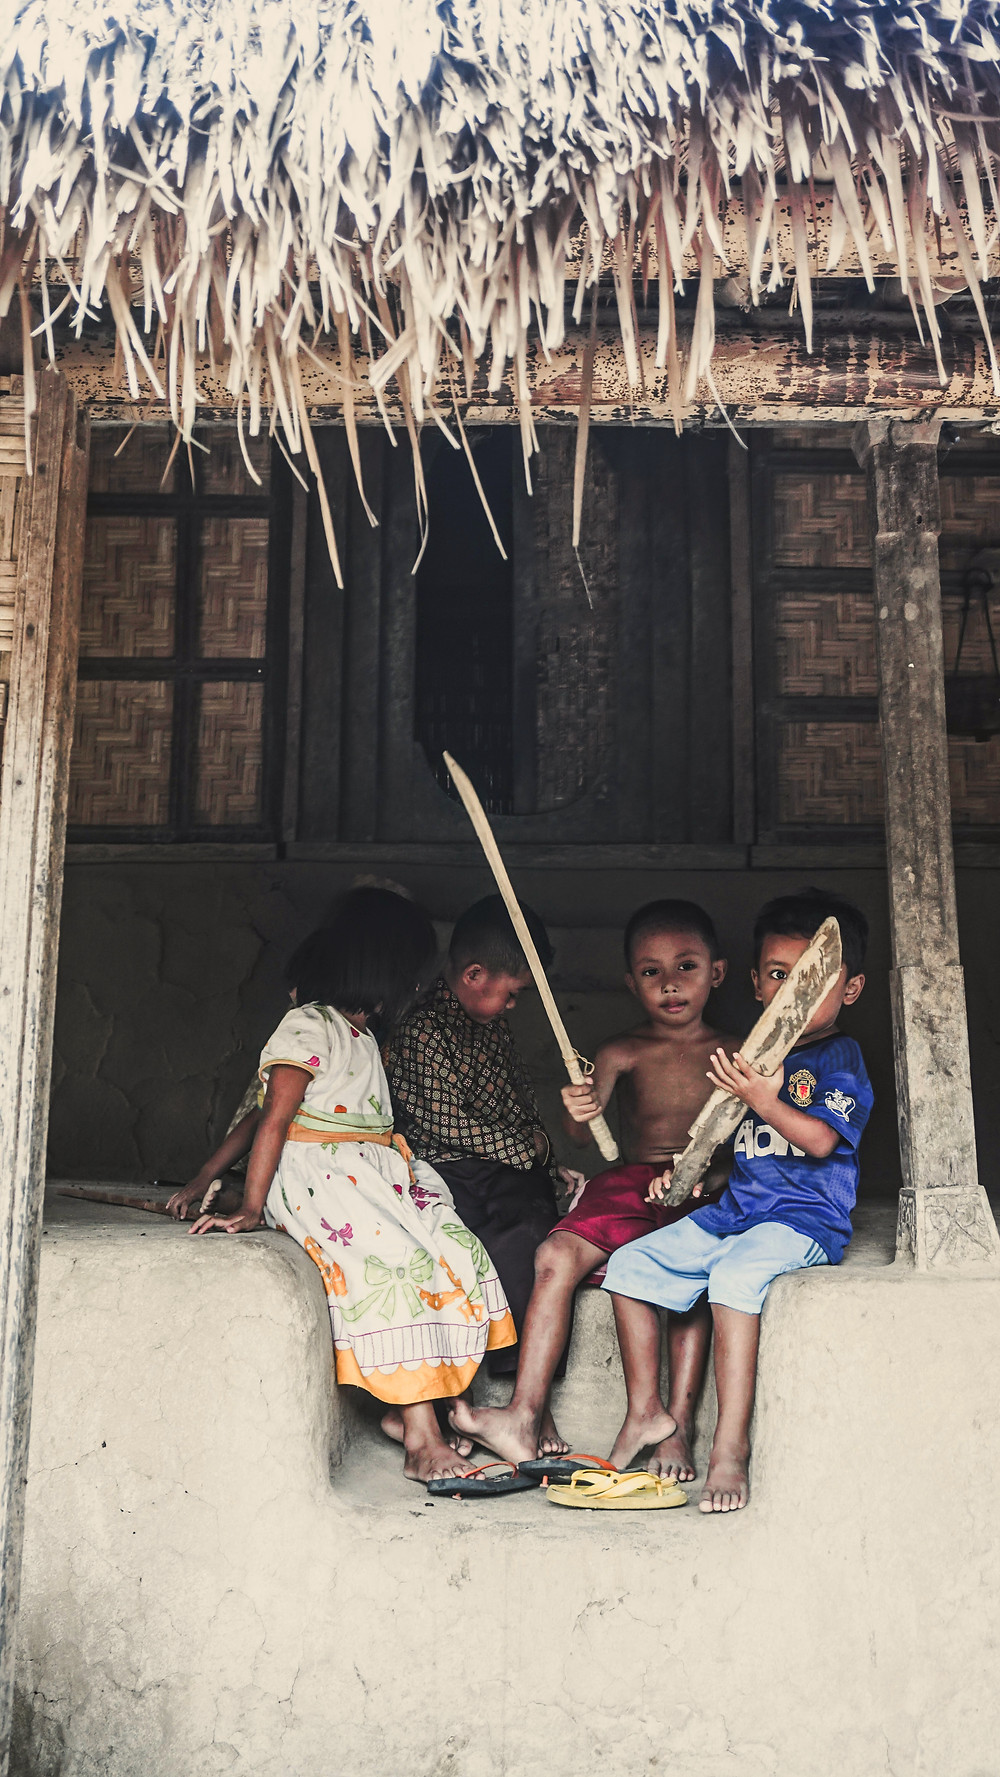 The children of Komodo village in Flores, Indonesia. Four small children playing together. Laba Laba Boat komodo tour.